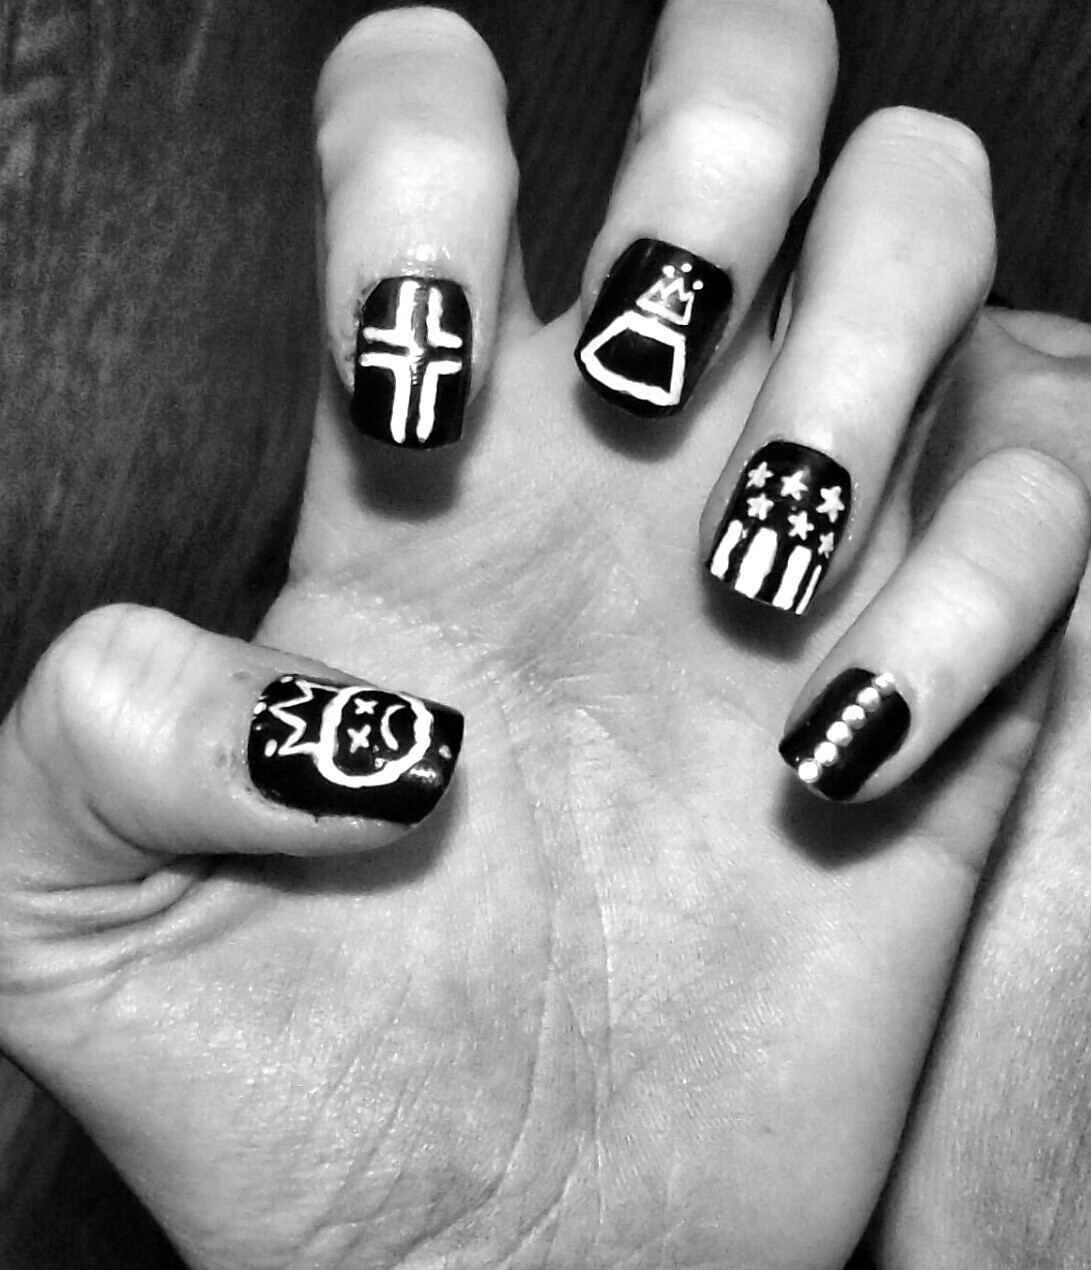 Fall Out Boy nail art on We Heart It